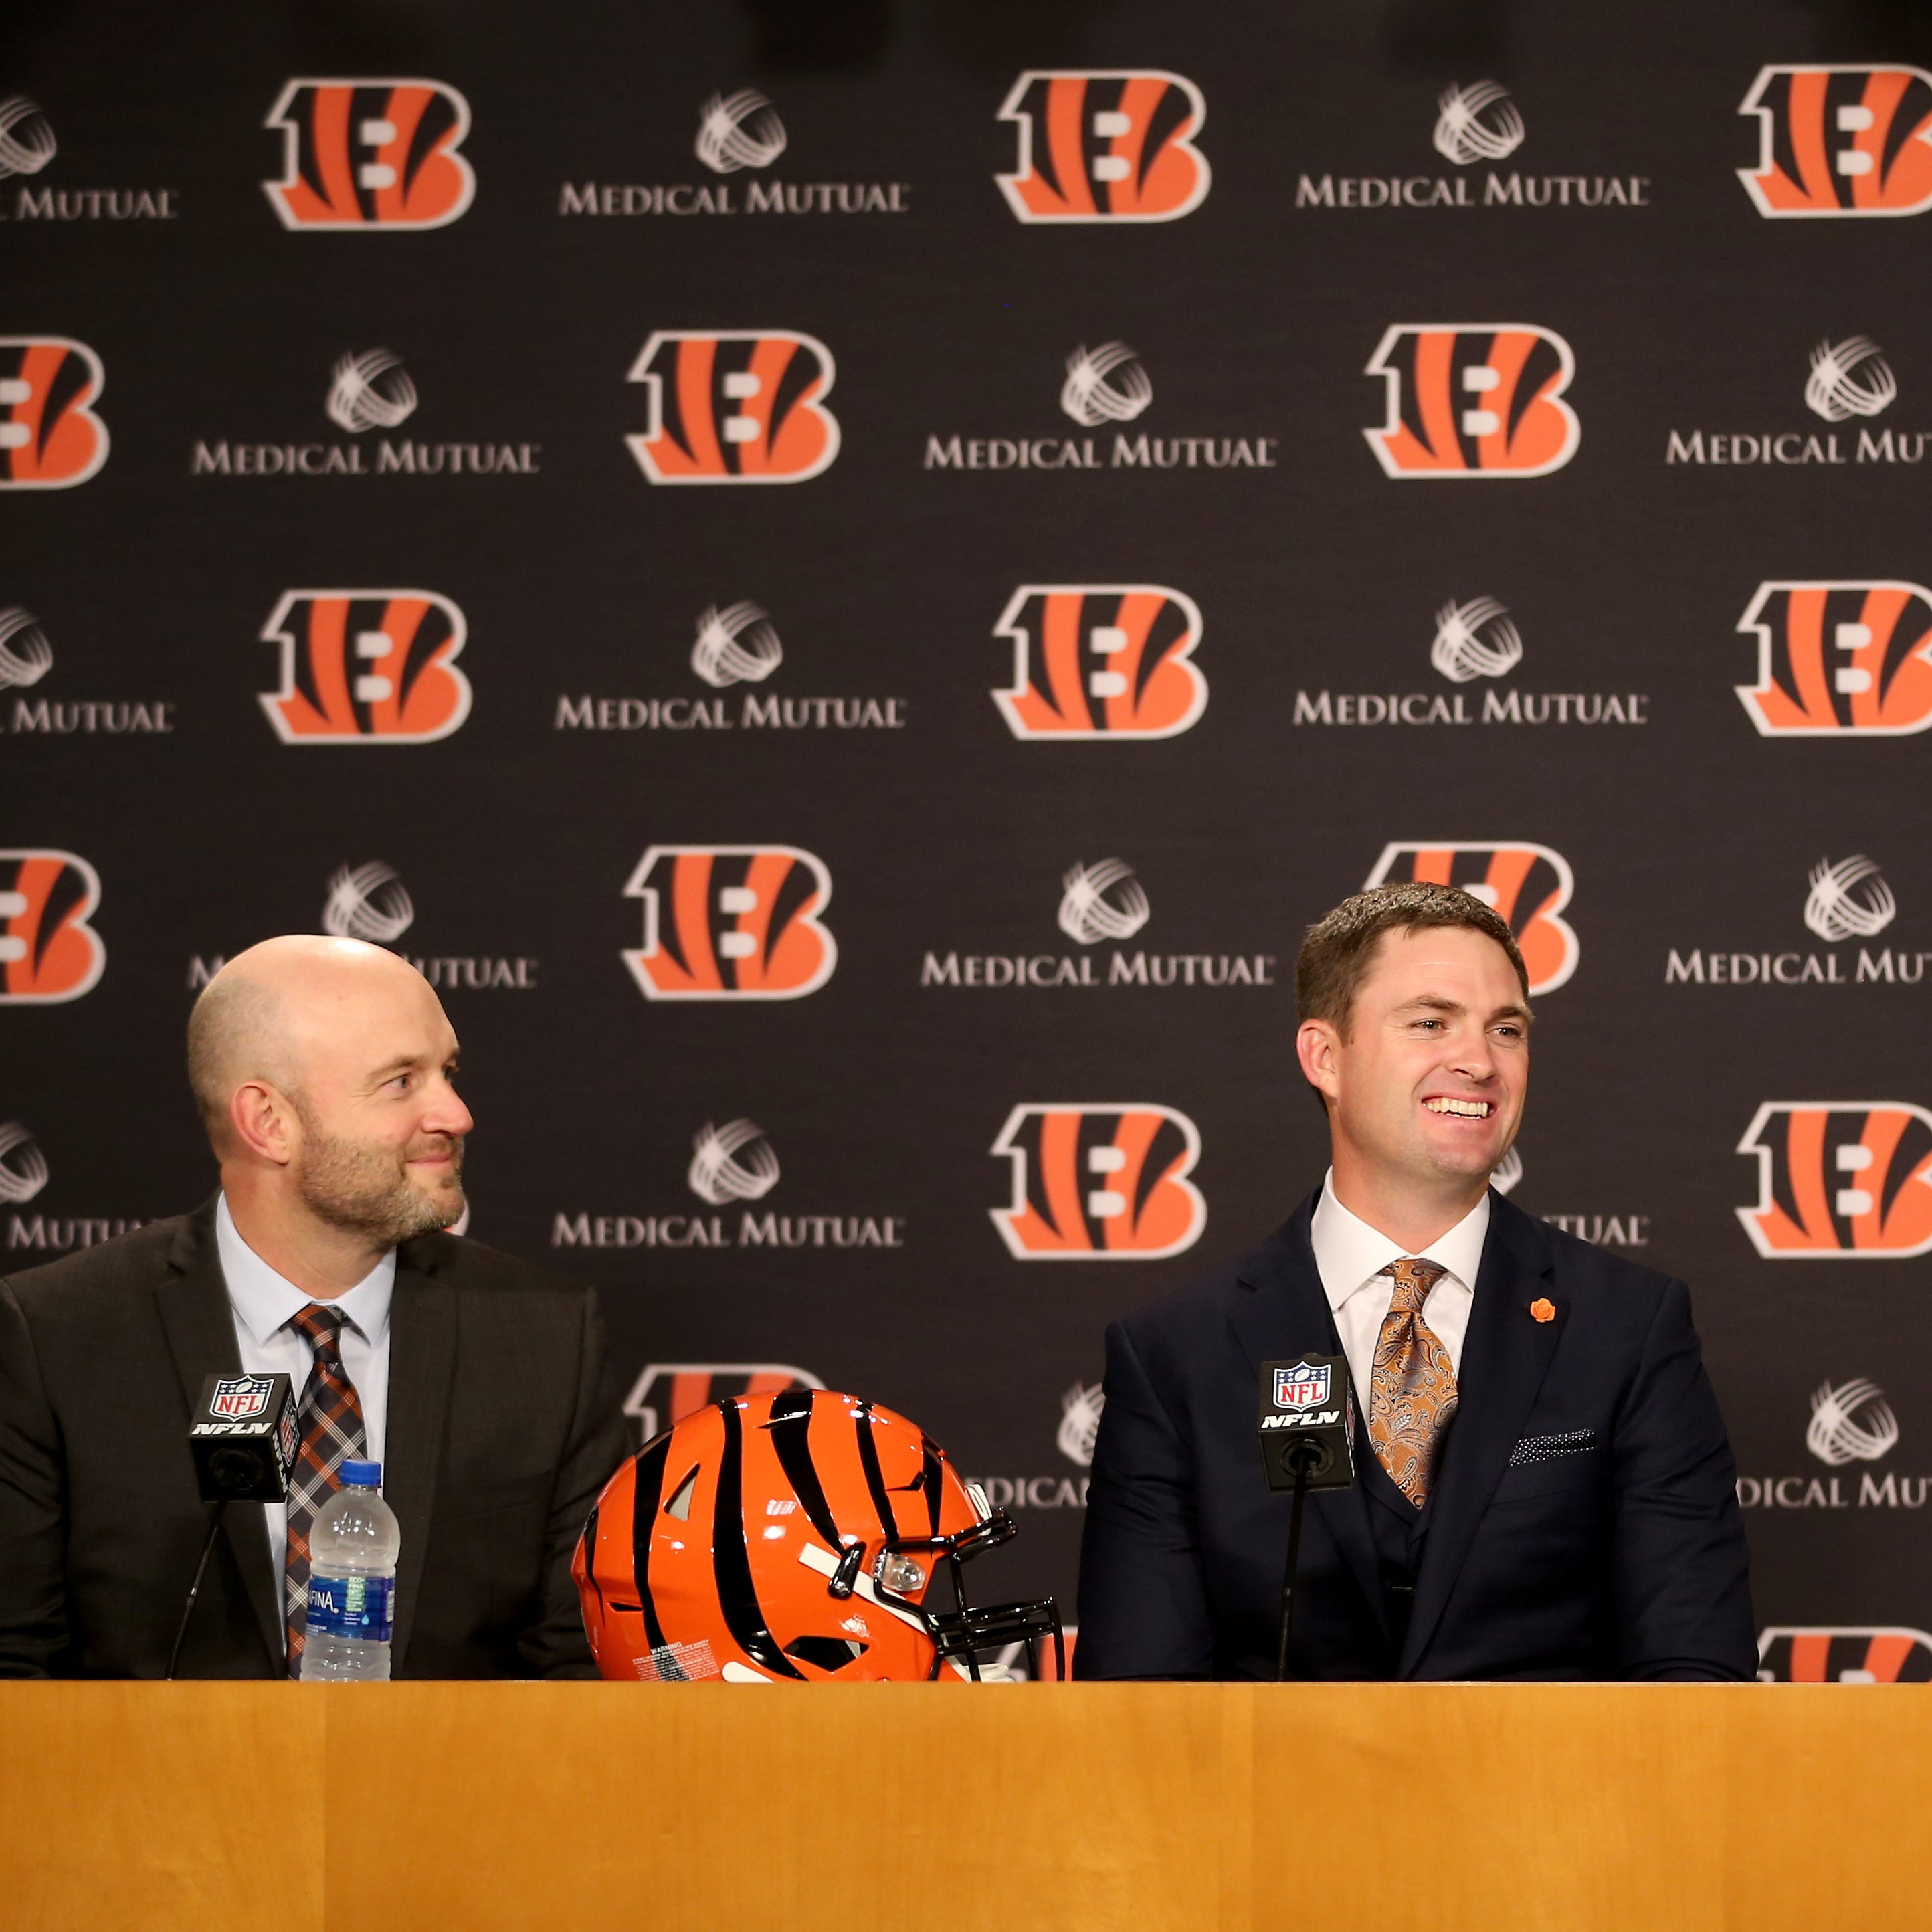 BX: Cincinnati Bengals starting from scratch in building draft chemistry